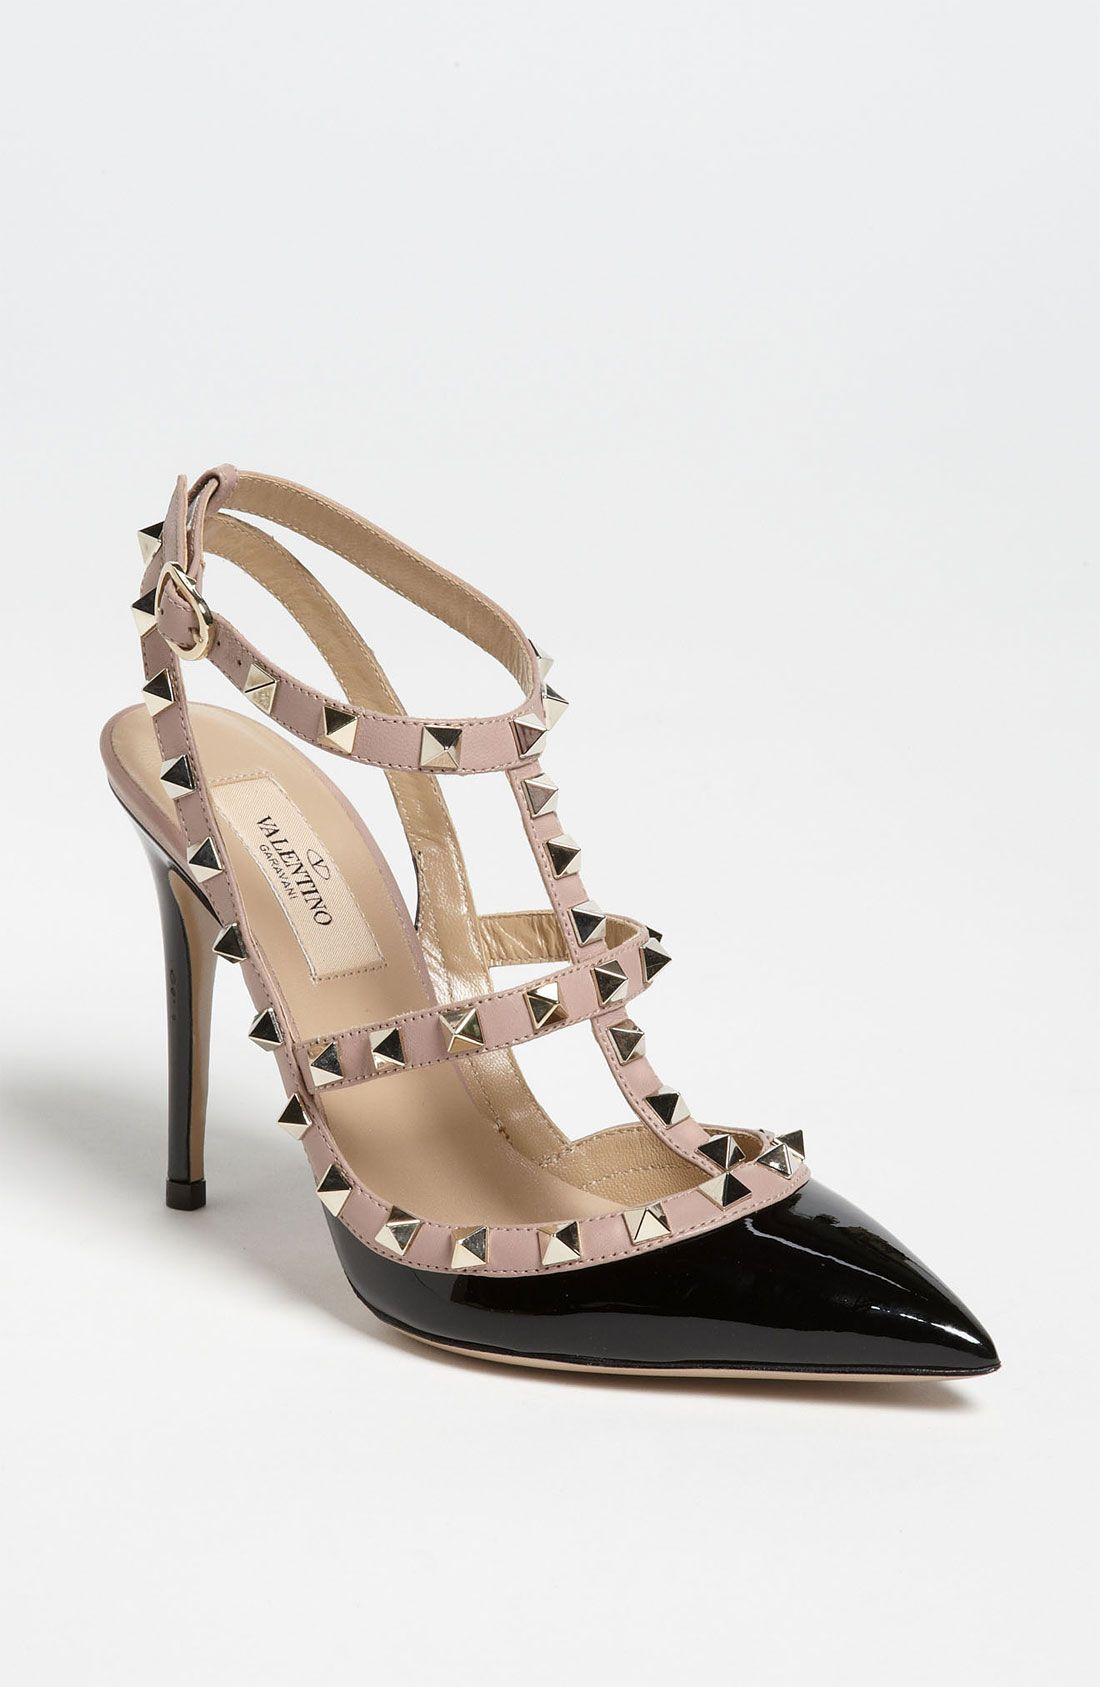 1efce13022d Shoe bucket list  Valentino Rockstud pumps.